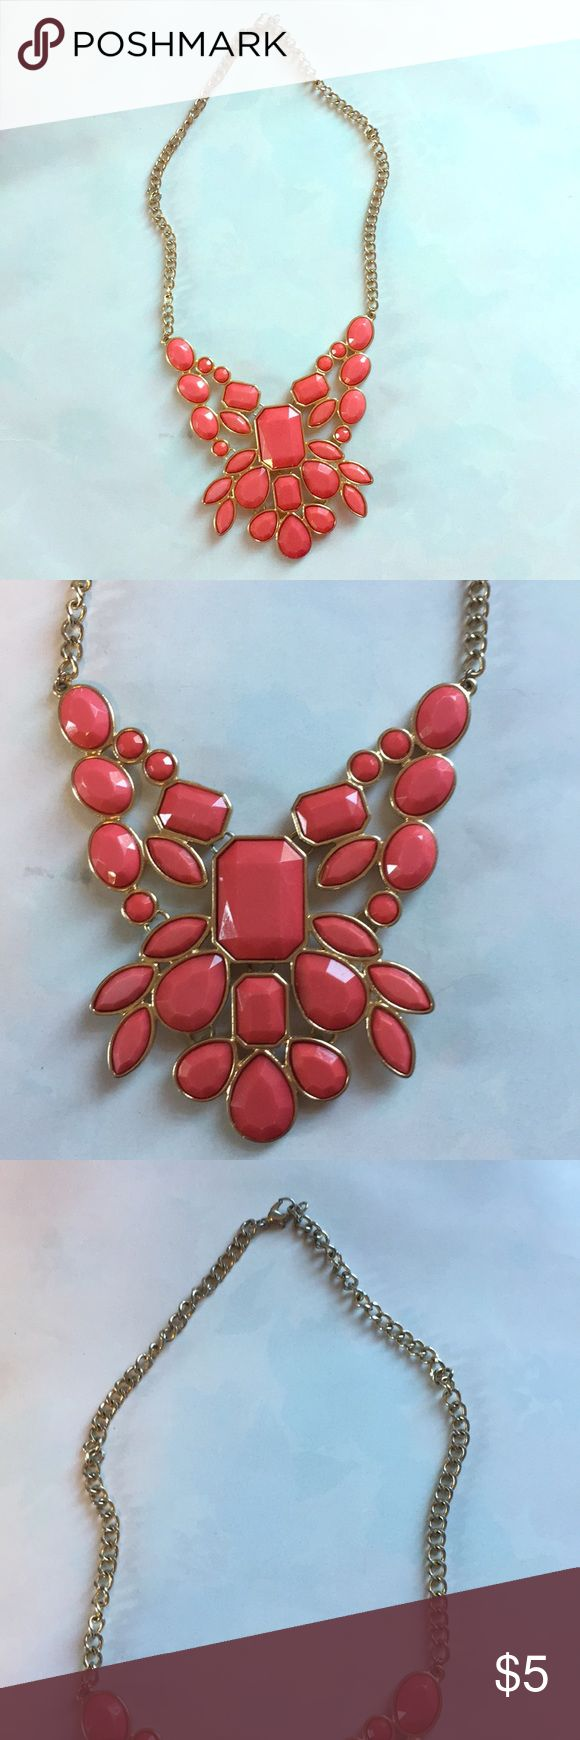 Coral Pink statement Necklace Coral pink and gold plastic statement necklace. Worn a handful of times but in good condition with no damage. Jewelry Necklaces